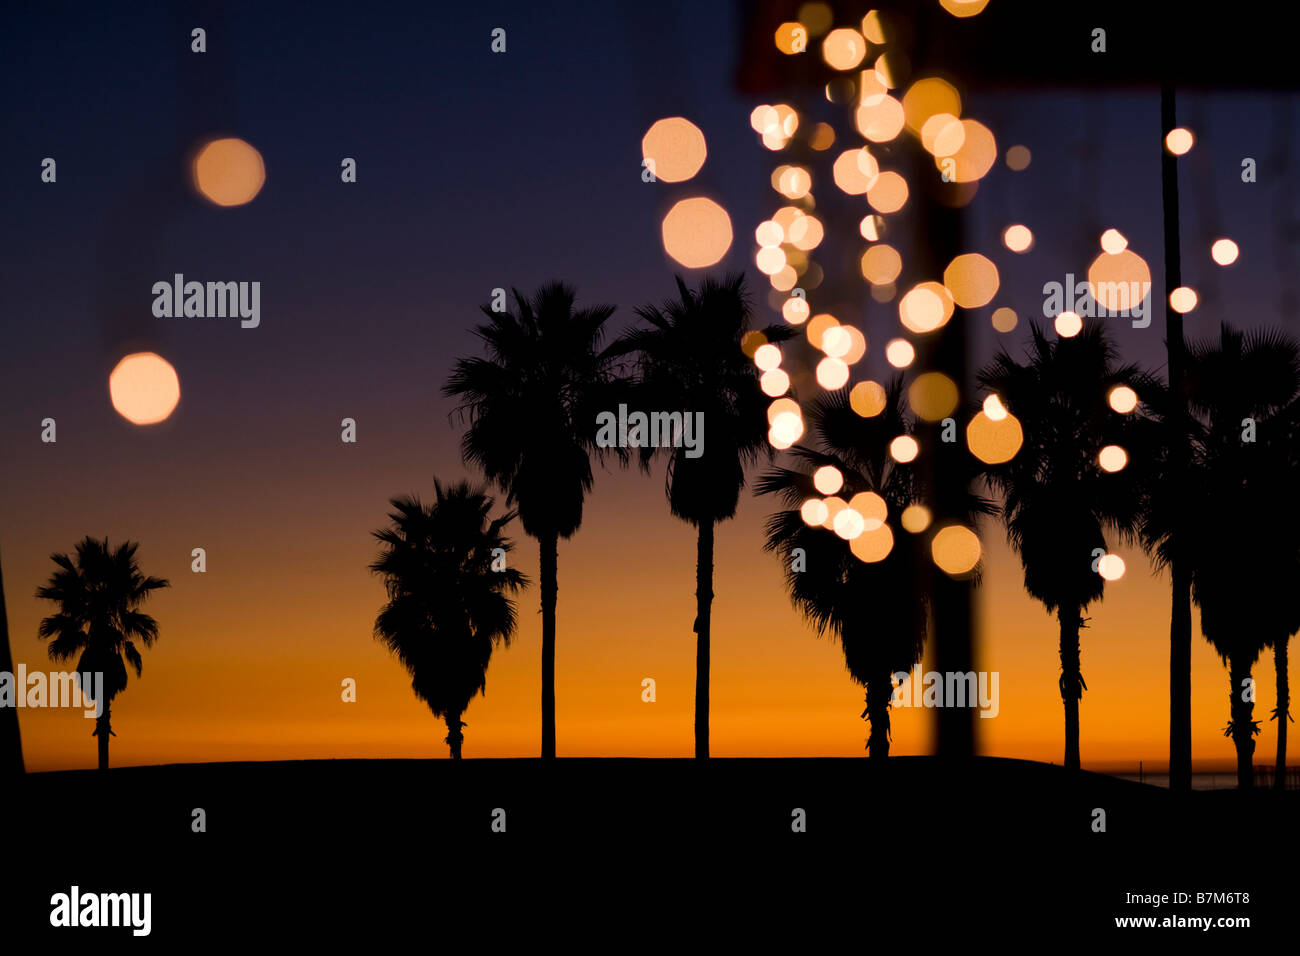 palm trees at sunset with christmas lights venice beach los angeles